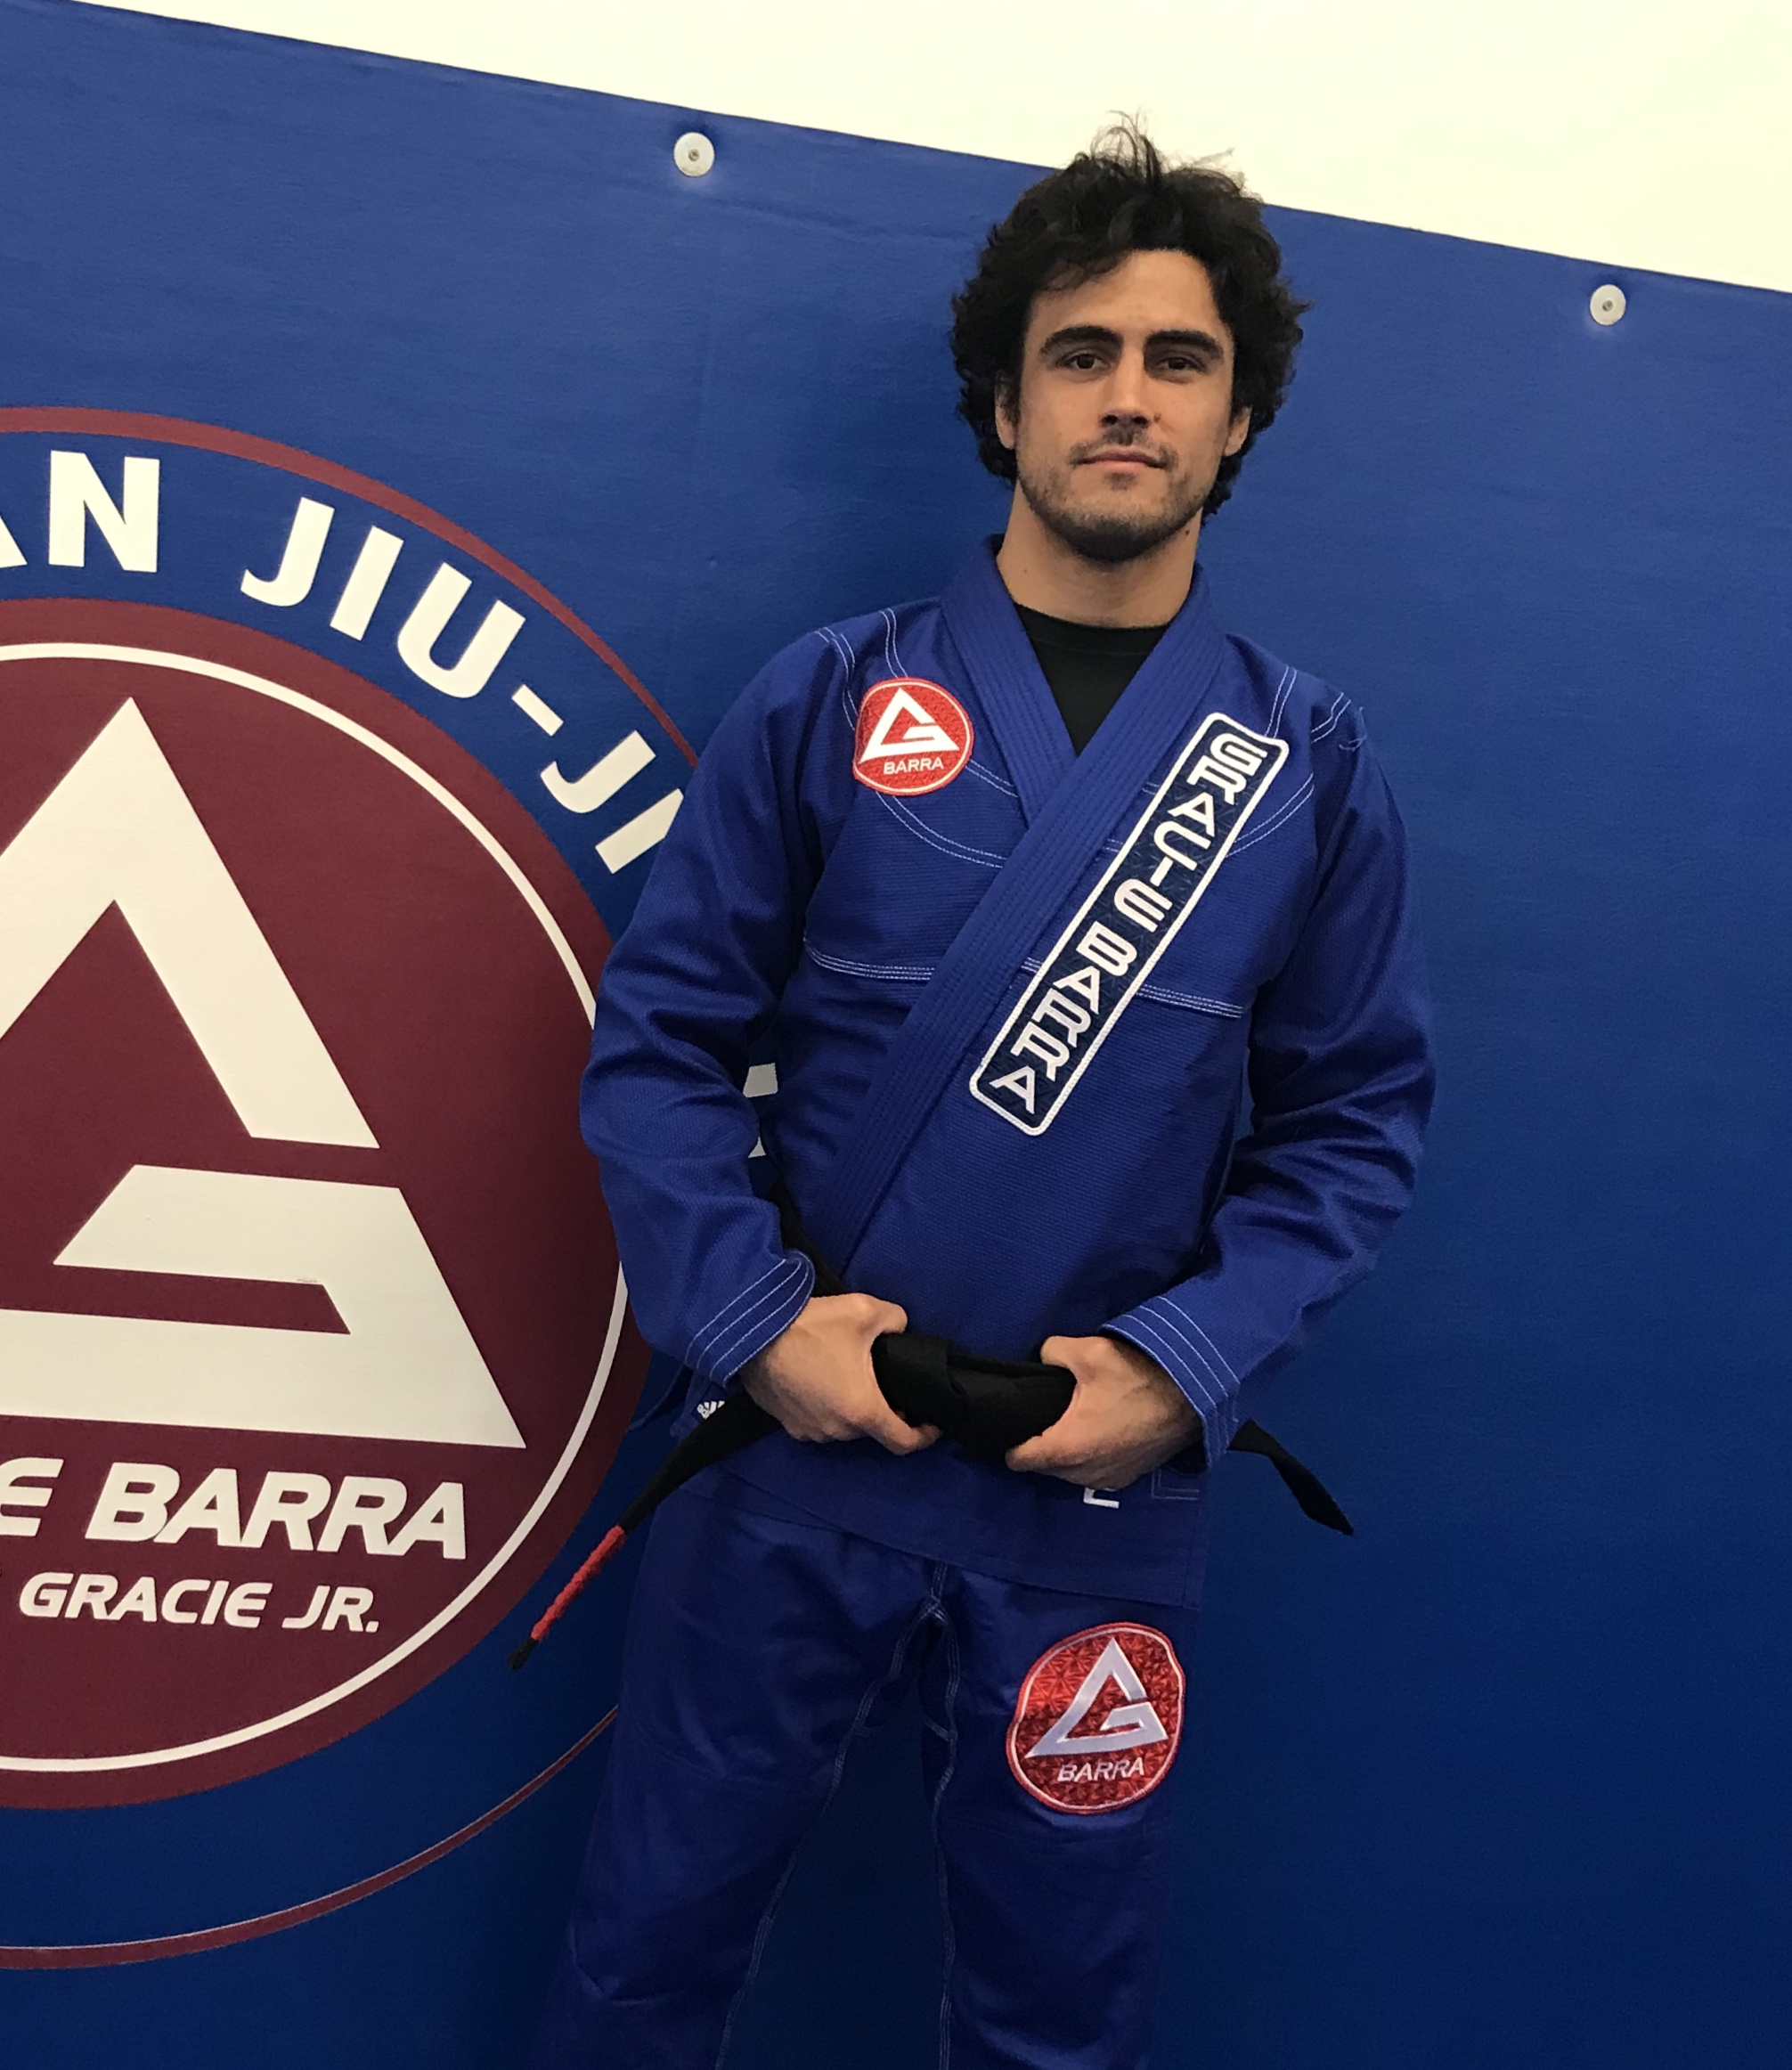 Joshua Bacallao – Head Instructor,